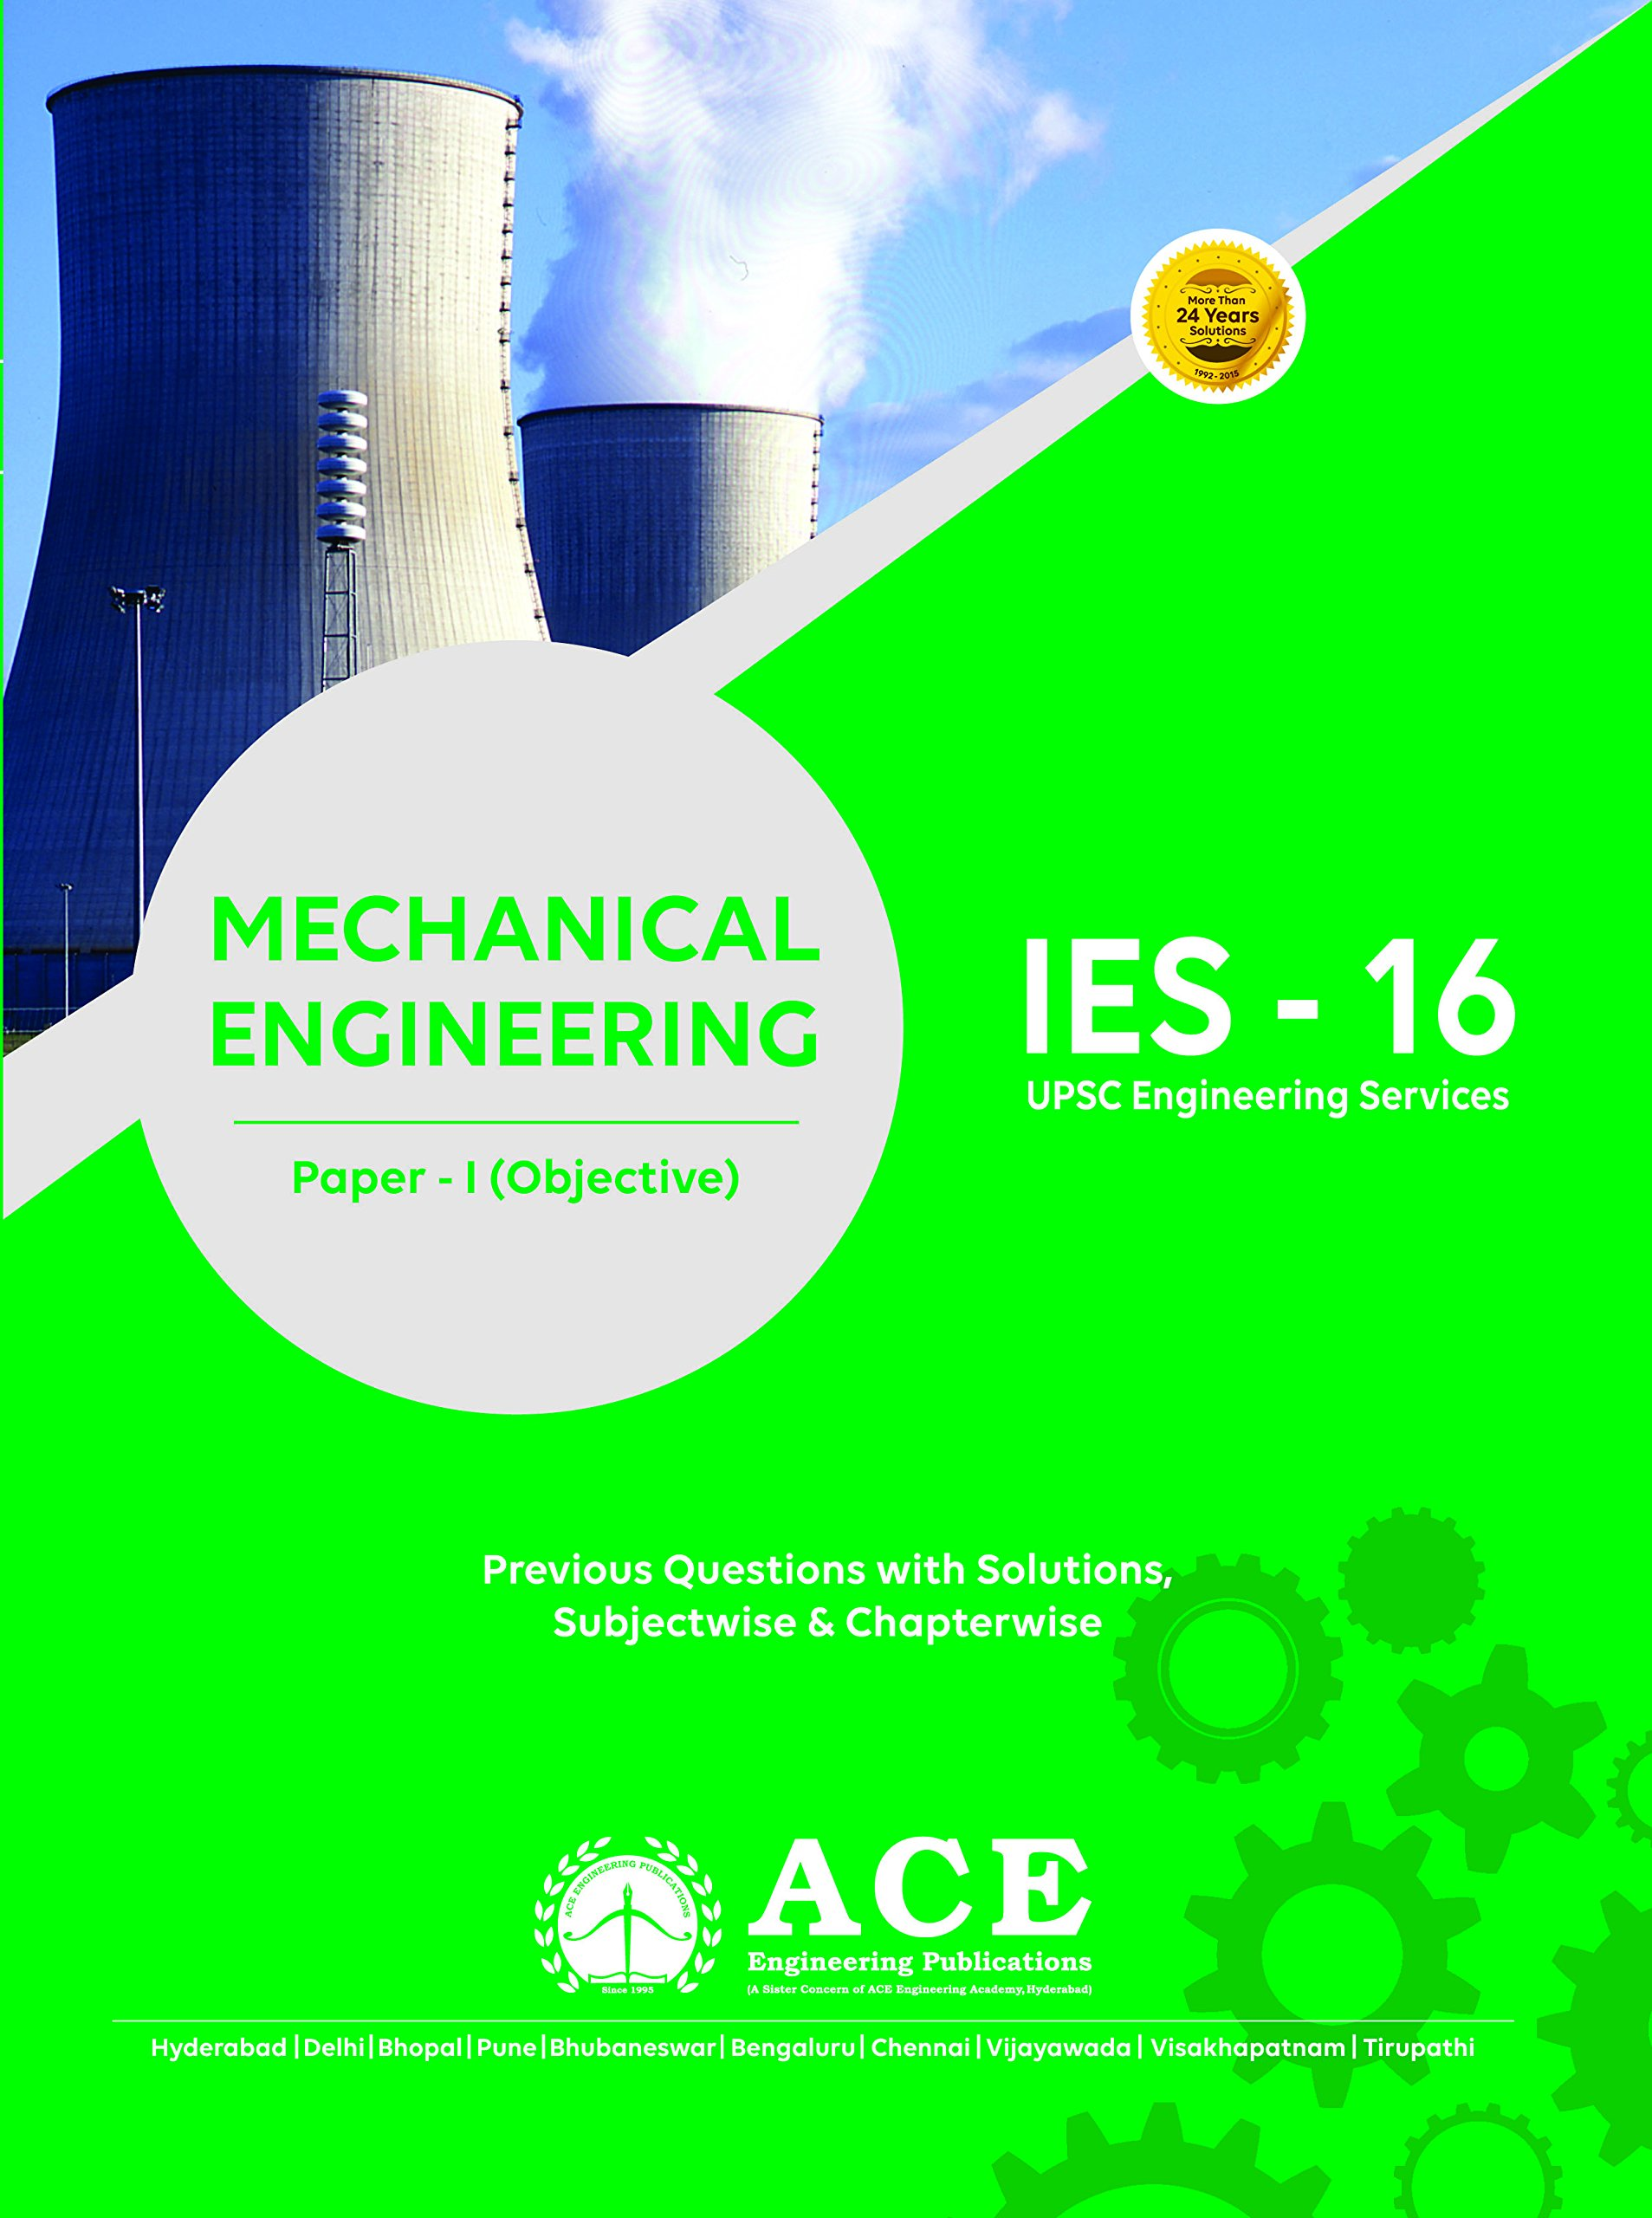 Download IES16-Mechanical Engg Objective Paper 1 (previous Questions & Solutions, Subject wise & Chapterwise, UPSC Engineering Services) PDF